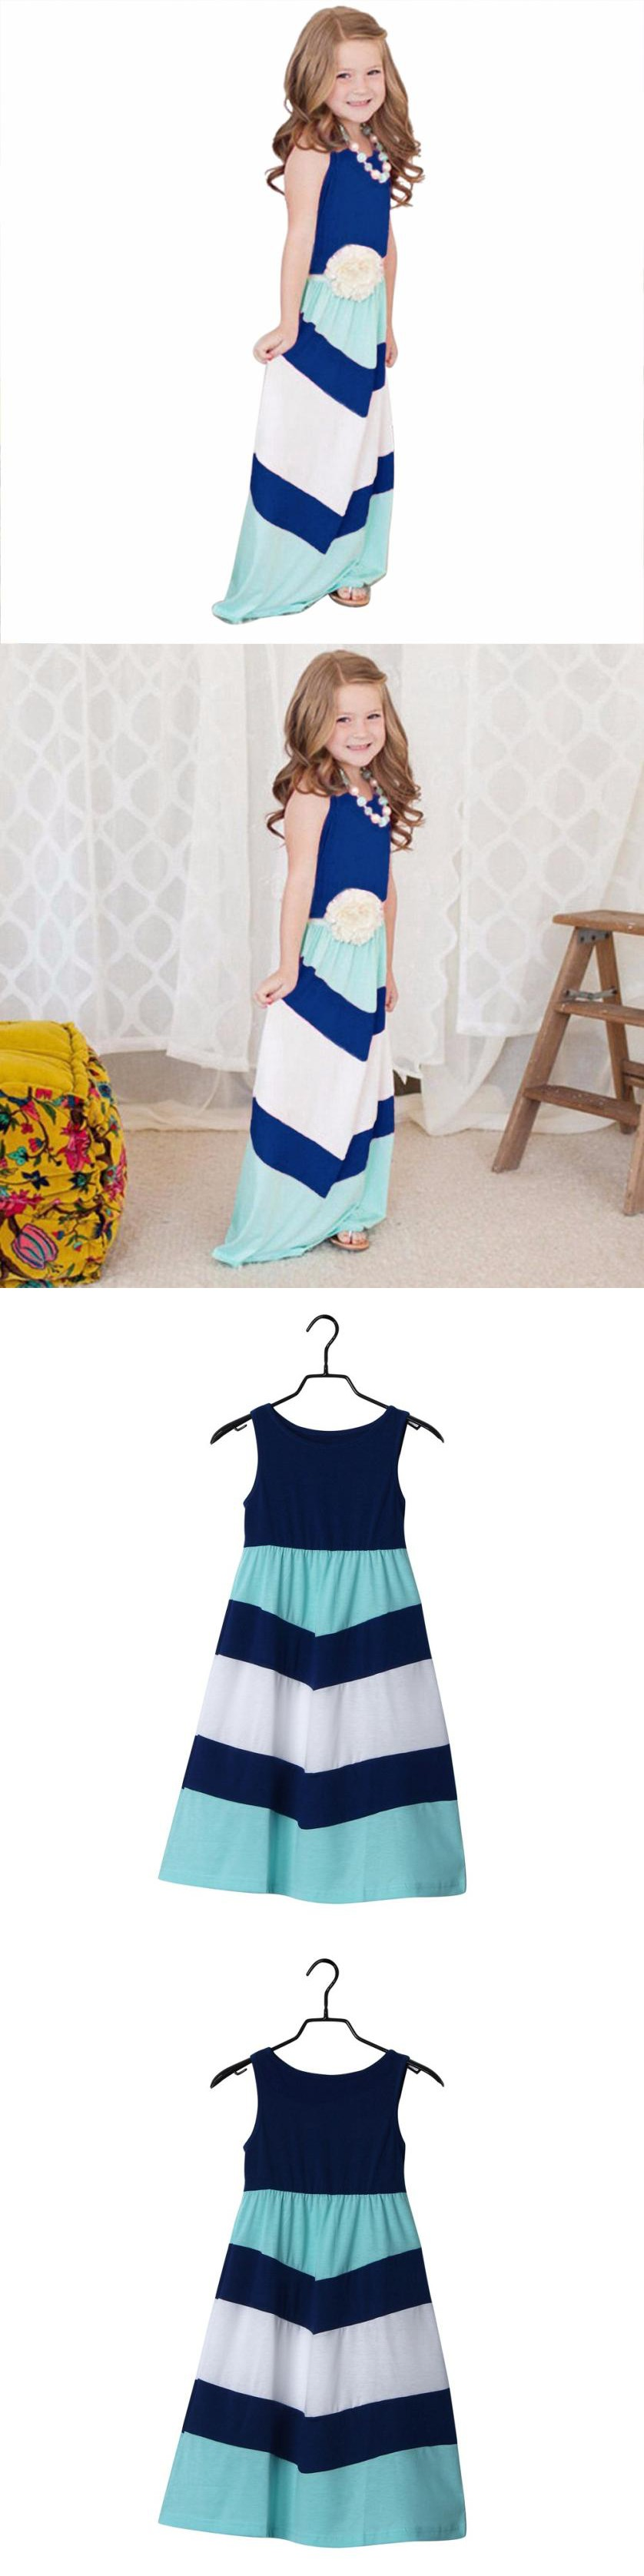 Kids dresses for girls blue striped summer beach long baby girl